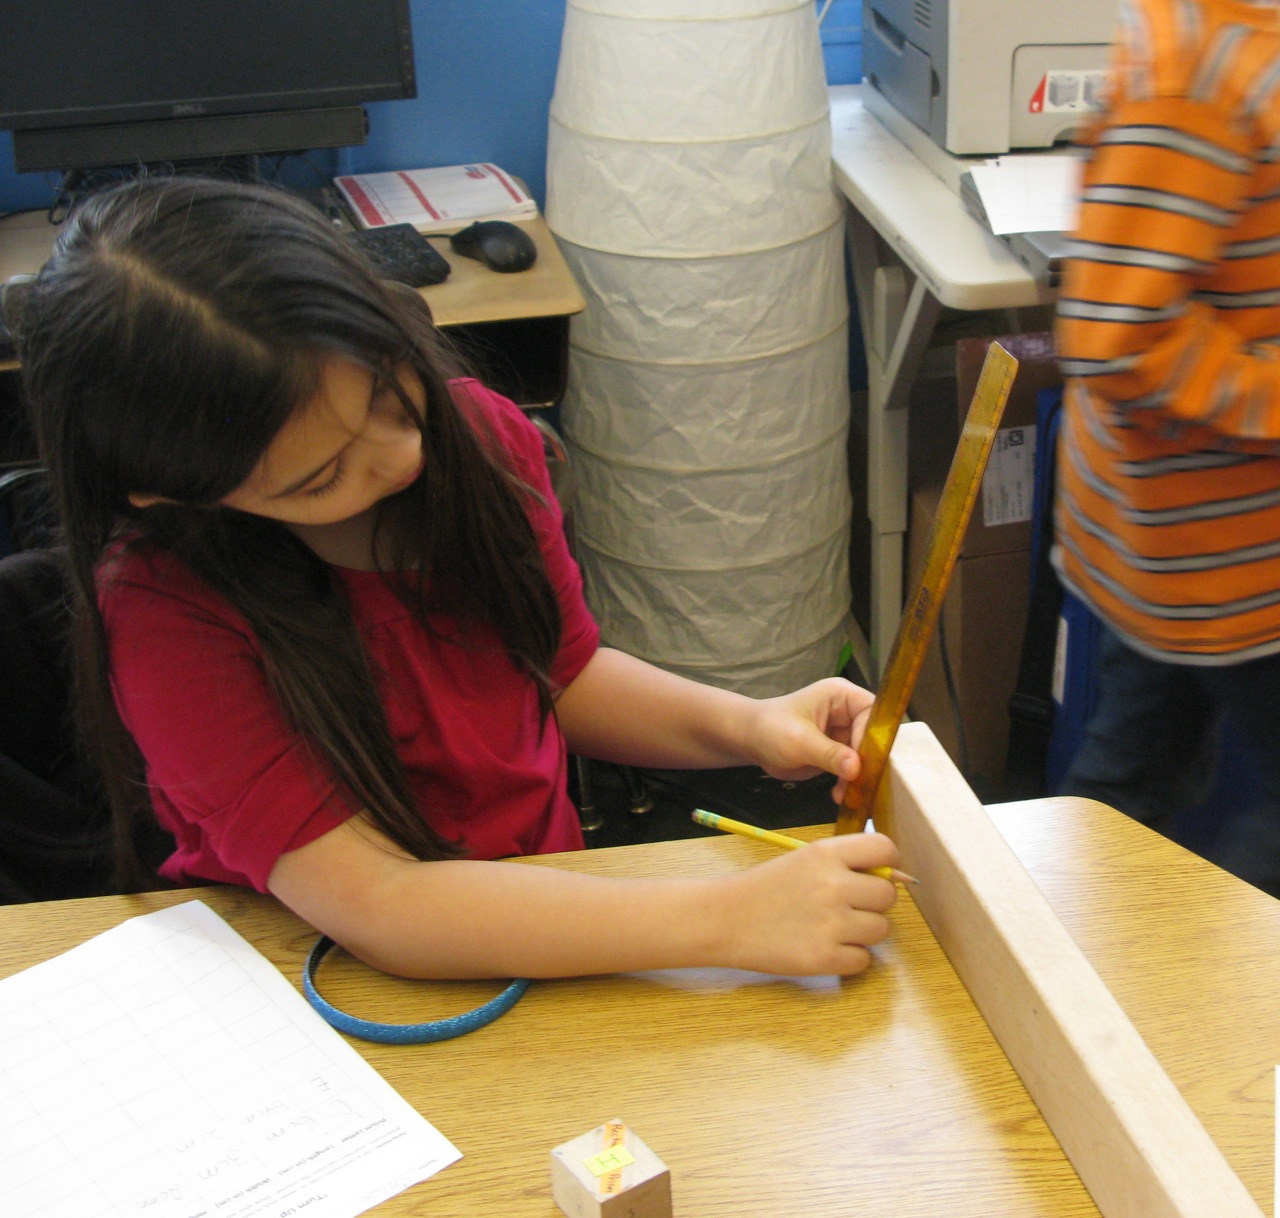 Finding the volume of wooden blocks through measurement.